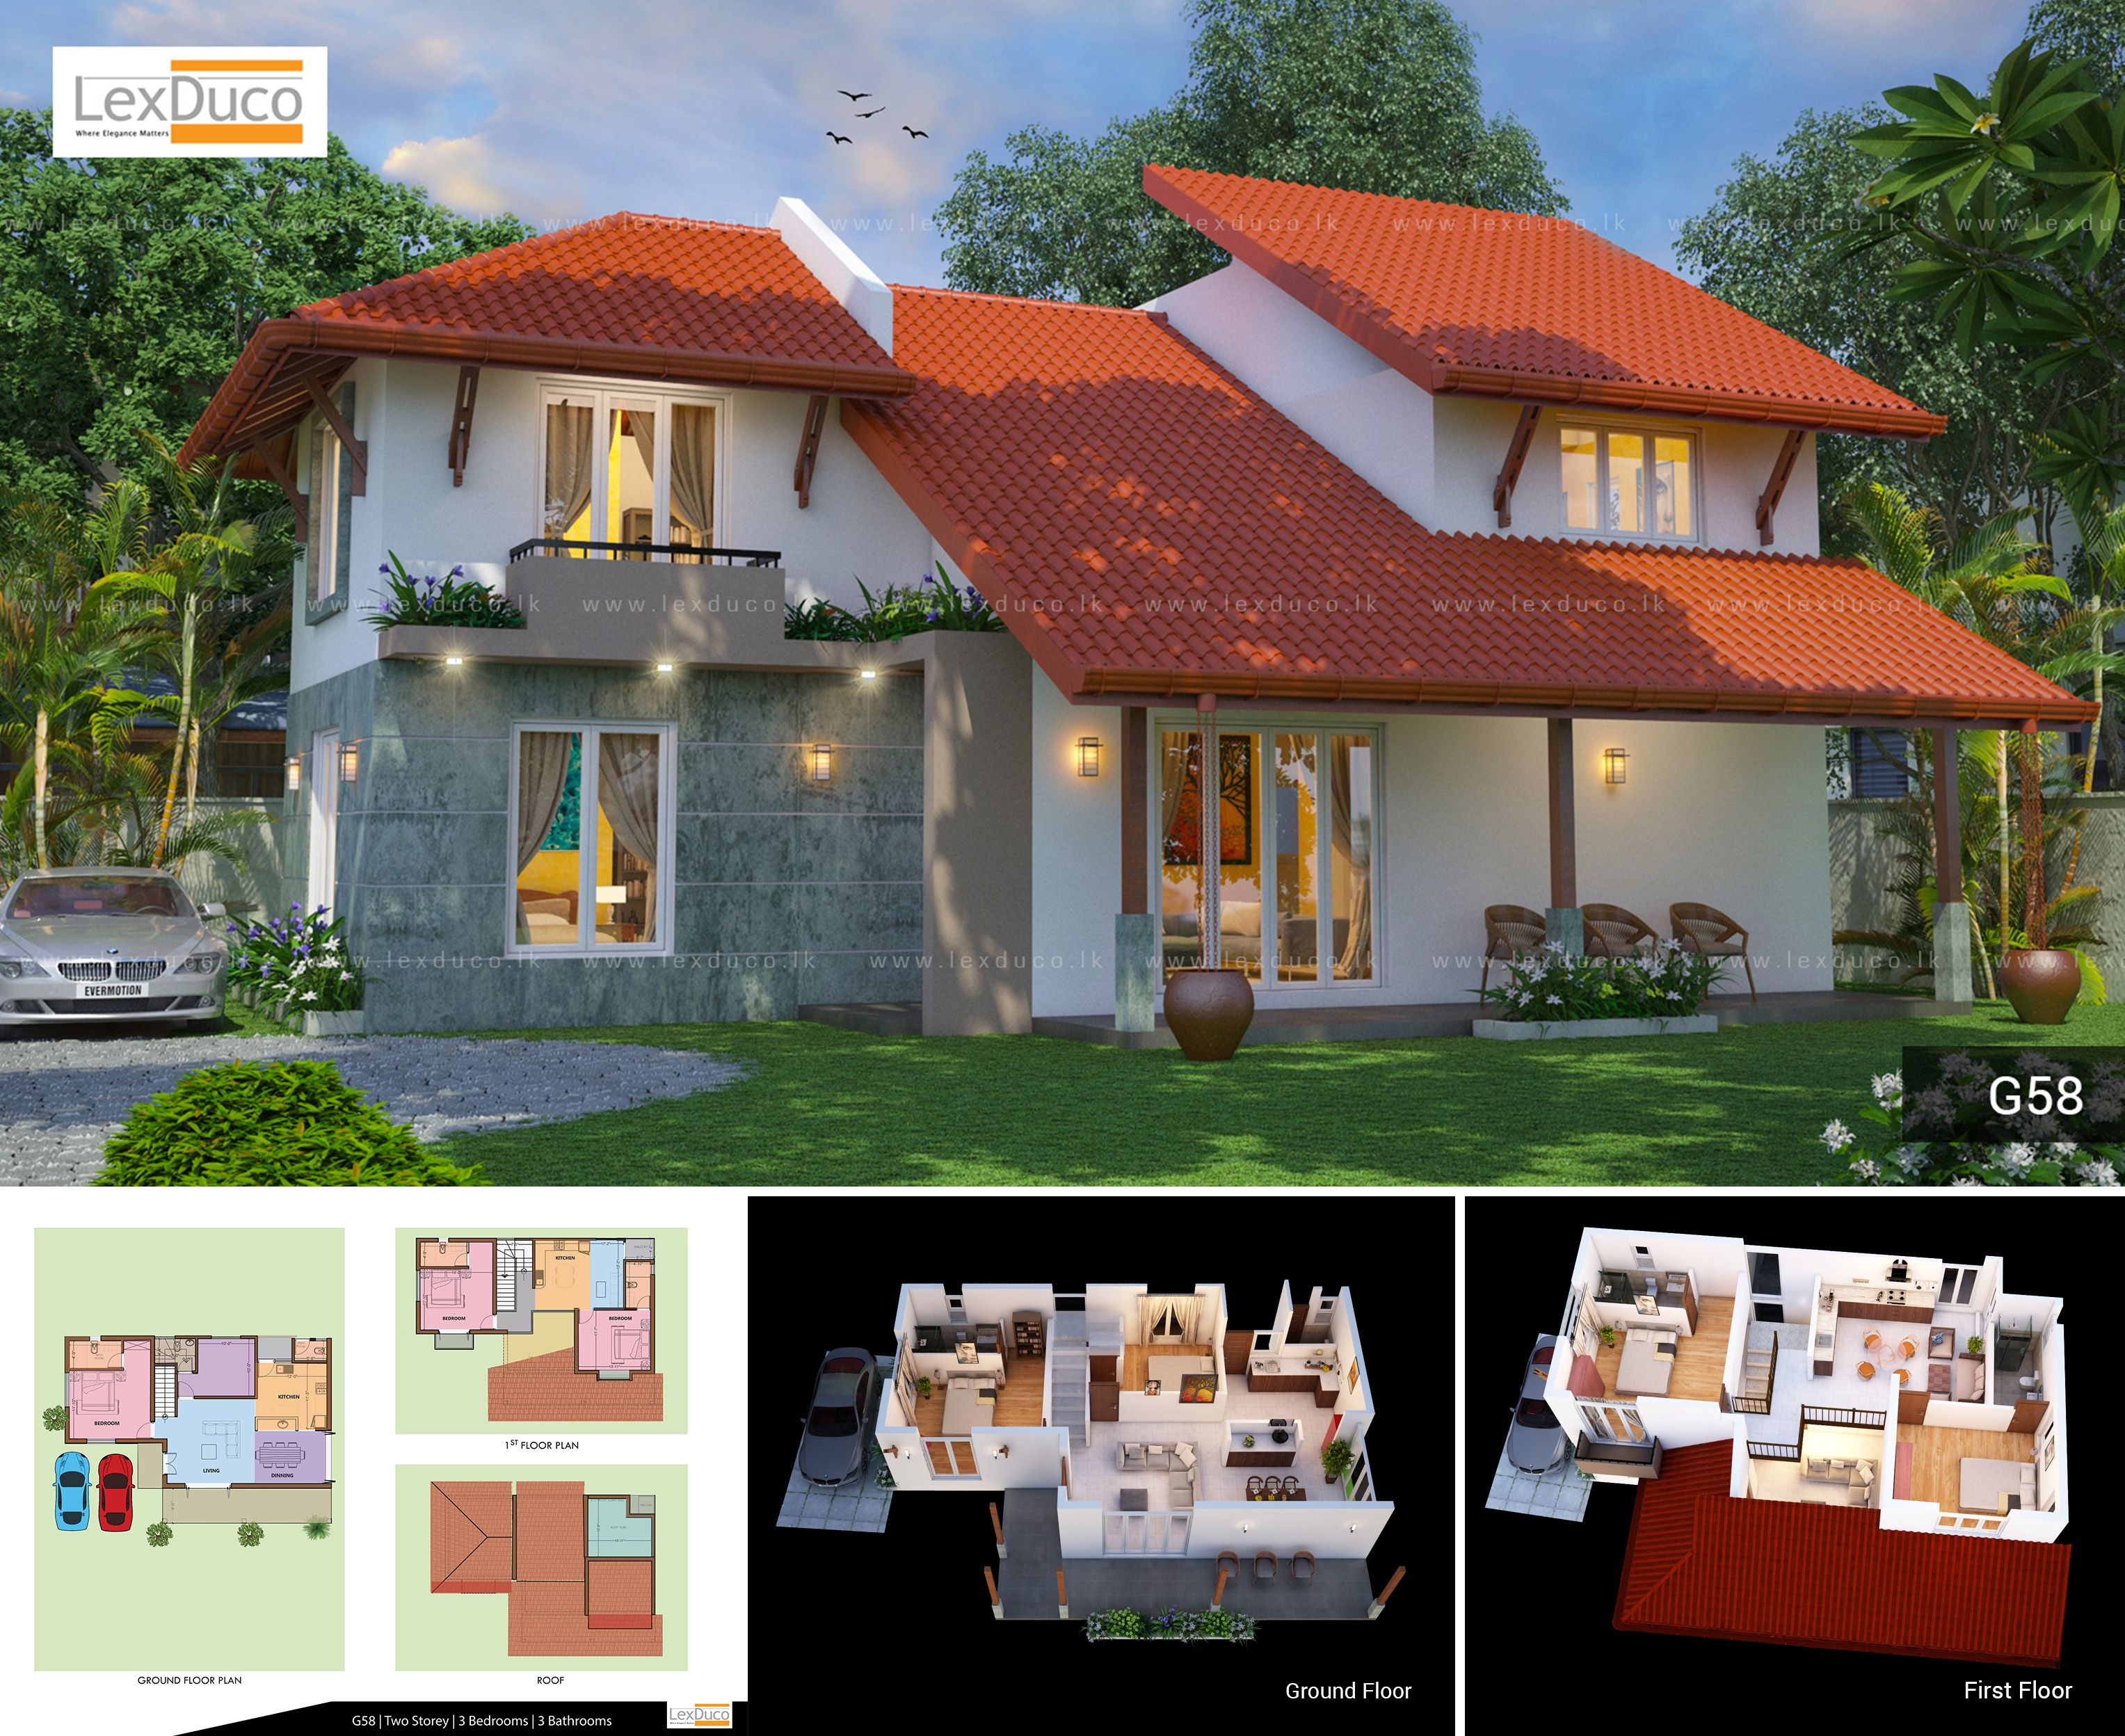 Top 200 House Designs In Sri Lanka And 3d Home Plans For 2019 By Lex Duco Two Storey Category In 2020 House Plans Two Storey House Plans House Design